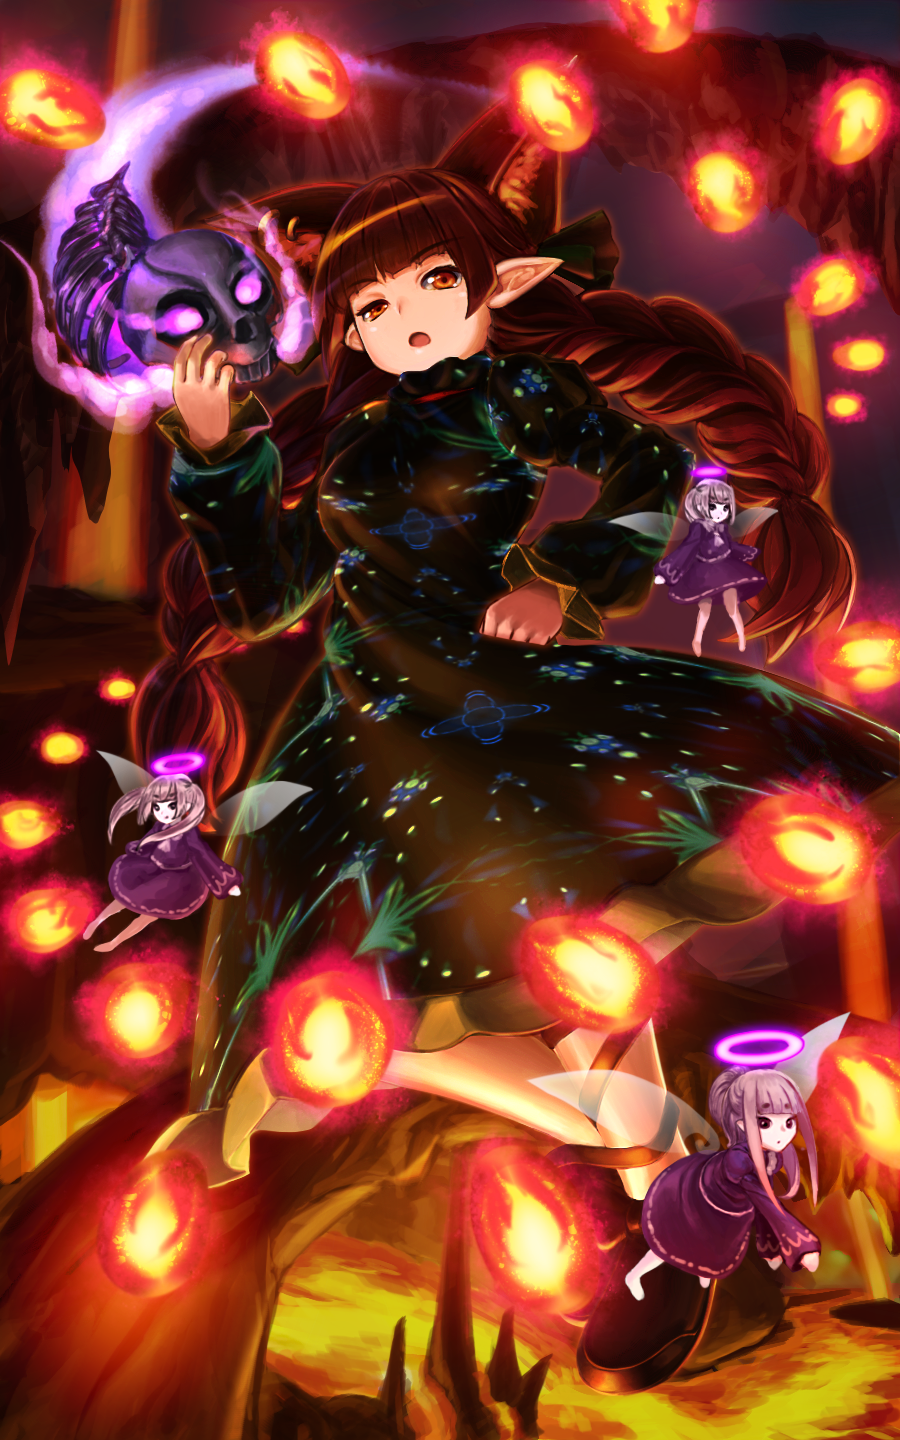 animal_ears bangs black_bow bow braid cat_ears cat_tail danmaku dress extra_ears fire frilled_dress frills glowing green_dress hair_bow halo hand_on_hip highres kaenbyou_rin long_hair long_sleeves looking_at_viewer looking_away mikami_yuuki_(nl8you) molten_rock multiple_tails nekomata puffy_long_sleeves puffy_sleeves purple_dress red_eyes redhead skull stalactite stalagmite tail touhou twin_braids very_long_hair zombie_fairy